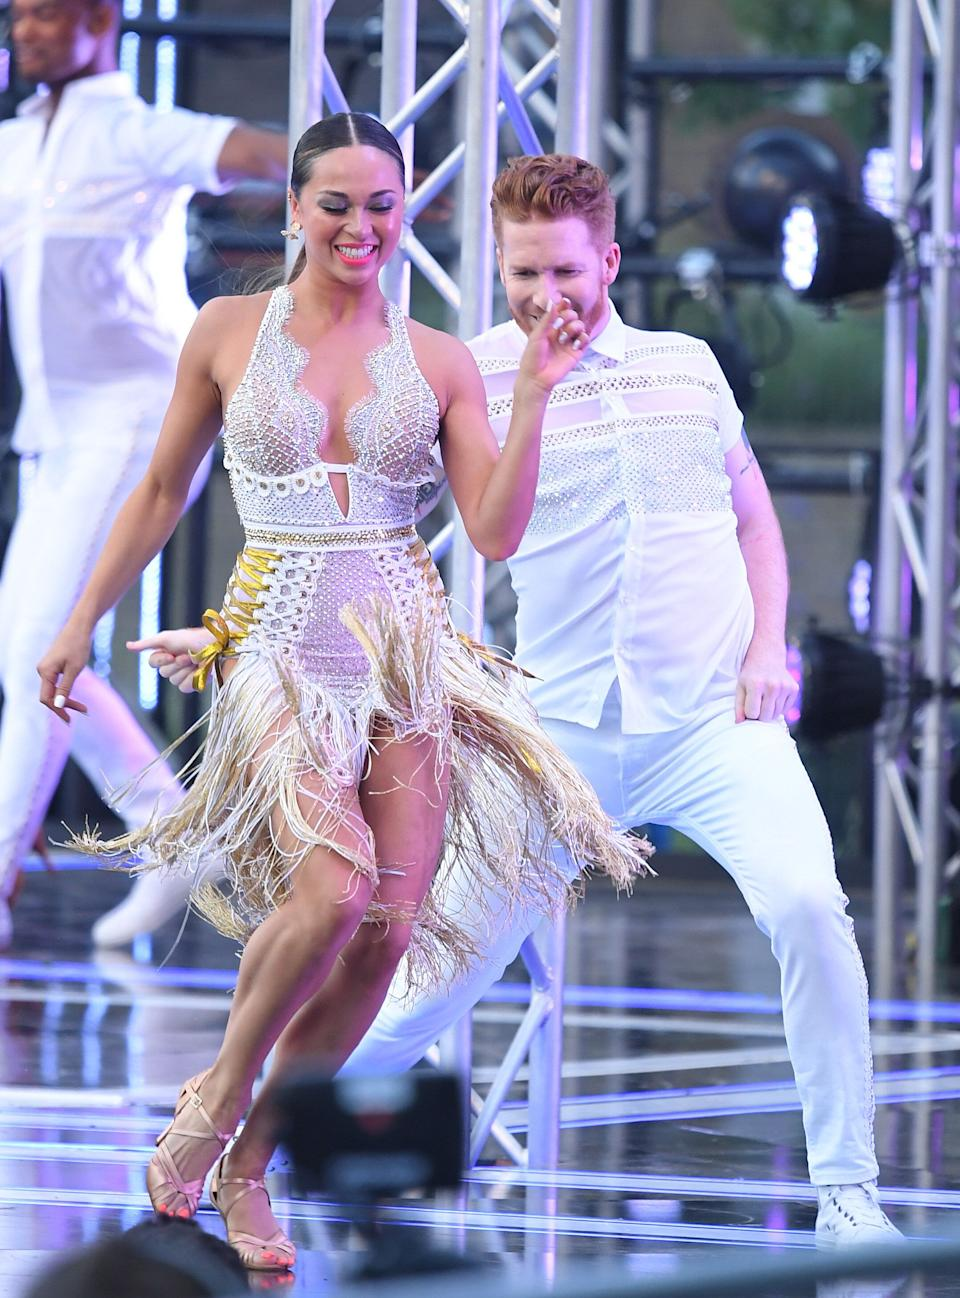 """LONDON, ENGLAND - AUGUST 26: Katya Jones and Neil Jones attend the """"Strictly Come Dancing"""" launch show red carpet arrivals at Television Centre on August 26, 2019 in London, England. (Photo by Karwai Tang/WireImage)"""